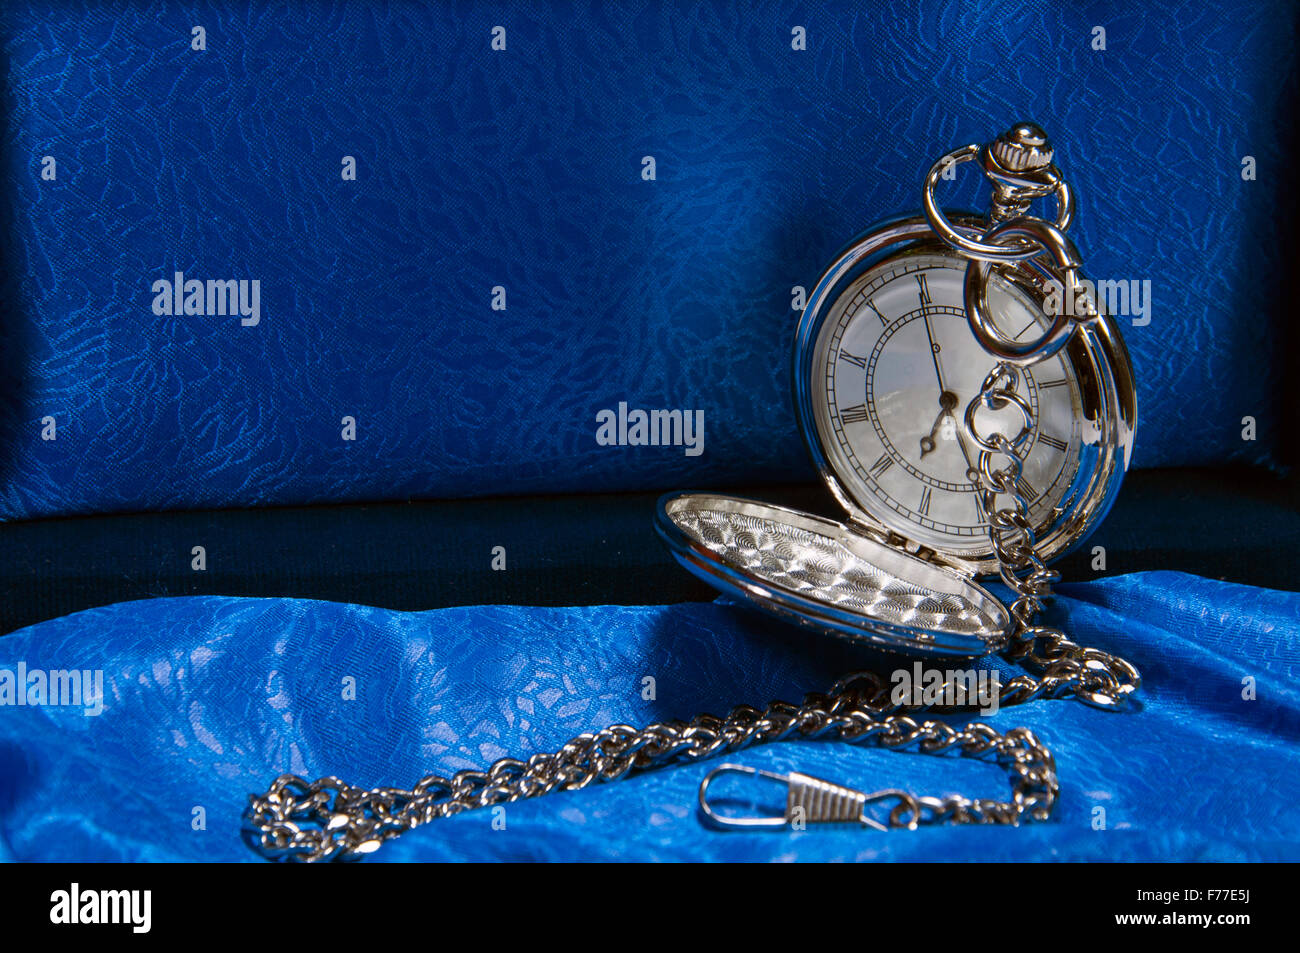 Vintage pocket watch and hour glass or sand timer, symbols of time with copy space - Stock Image